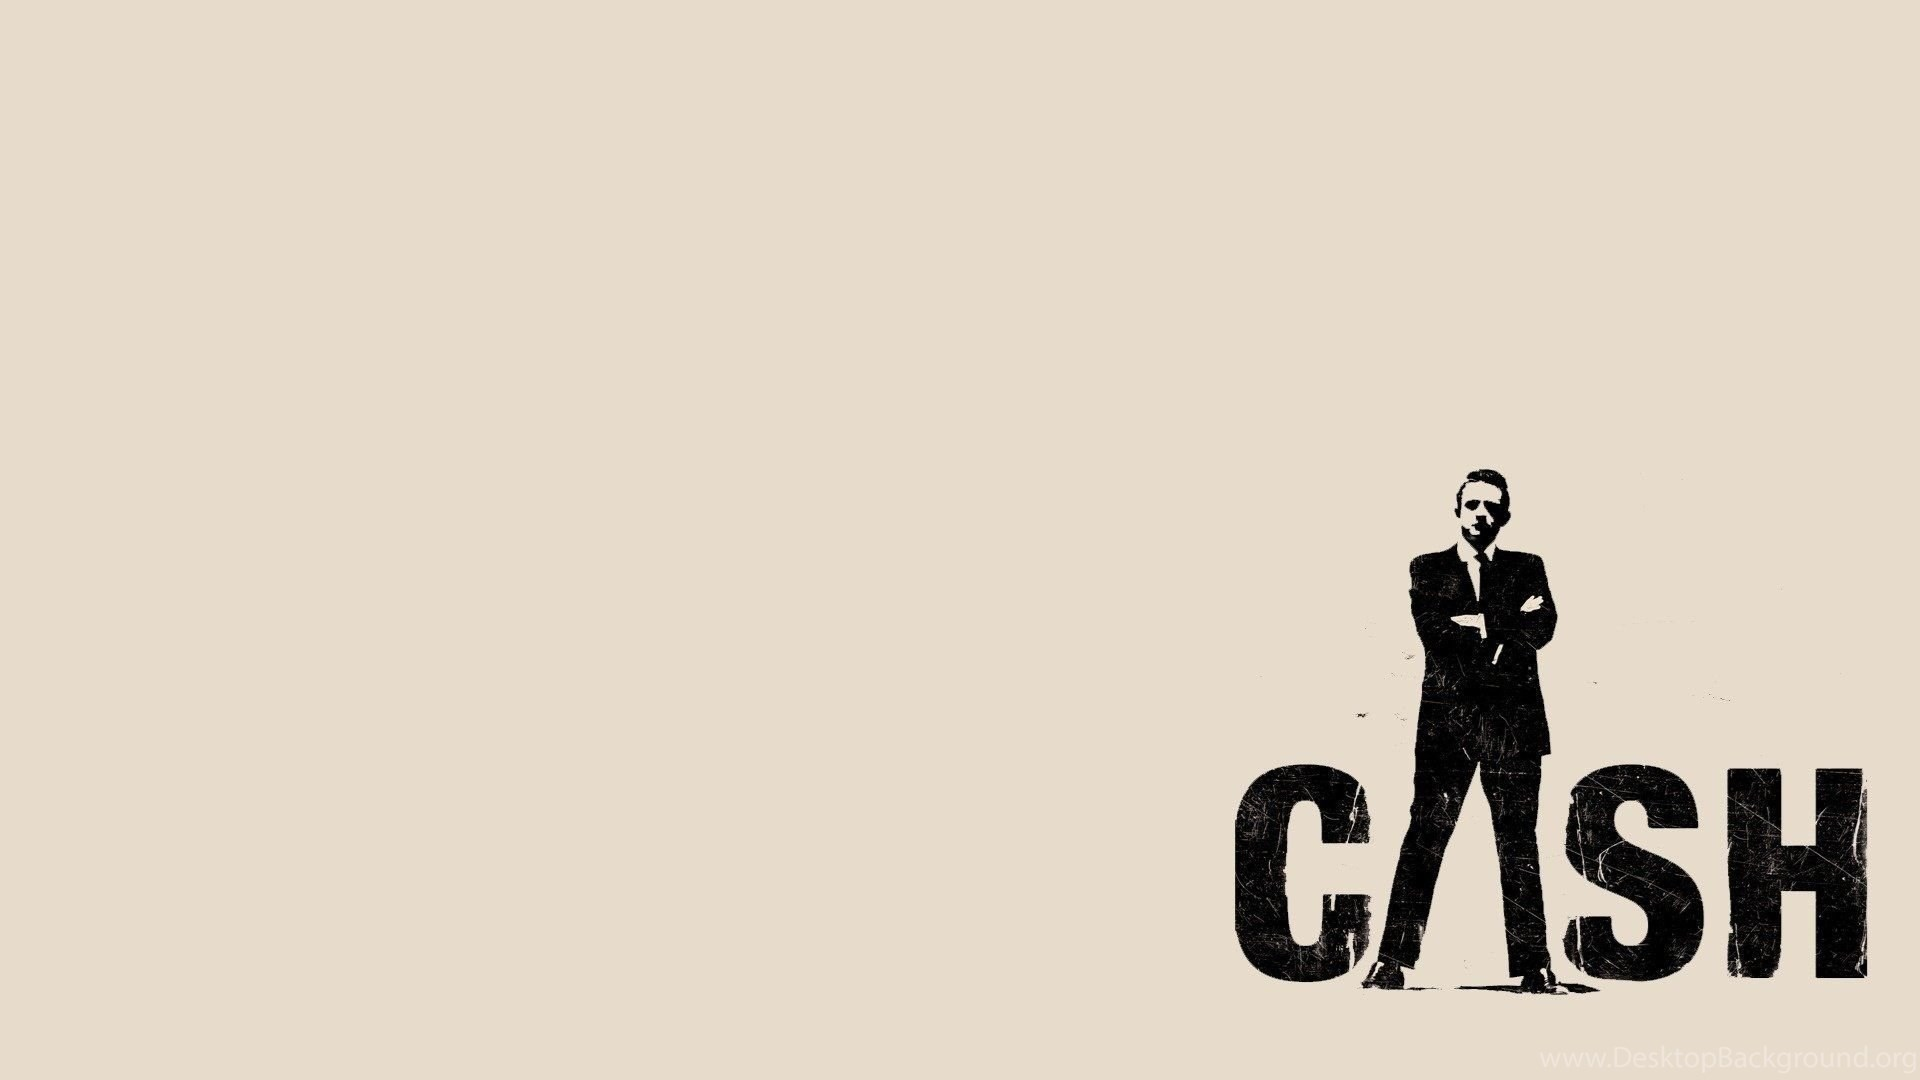 Good Wallpaper Music Country - 25752_johnny-cash-country-music-minimal-wallpapers_1920x1080_h  Best Photo Reference_597948.jpg